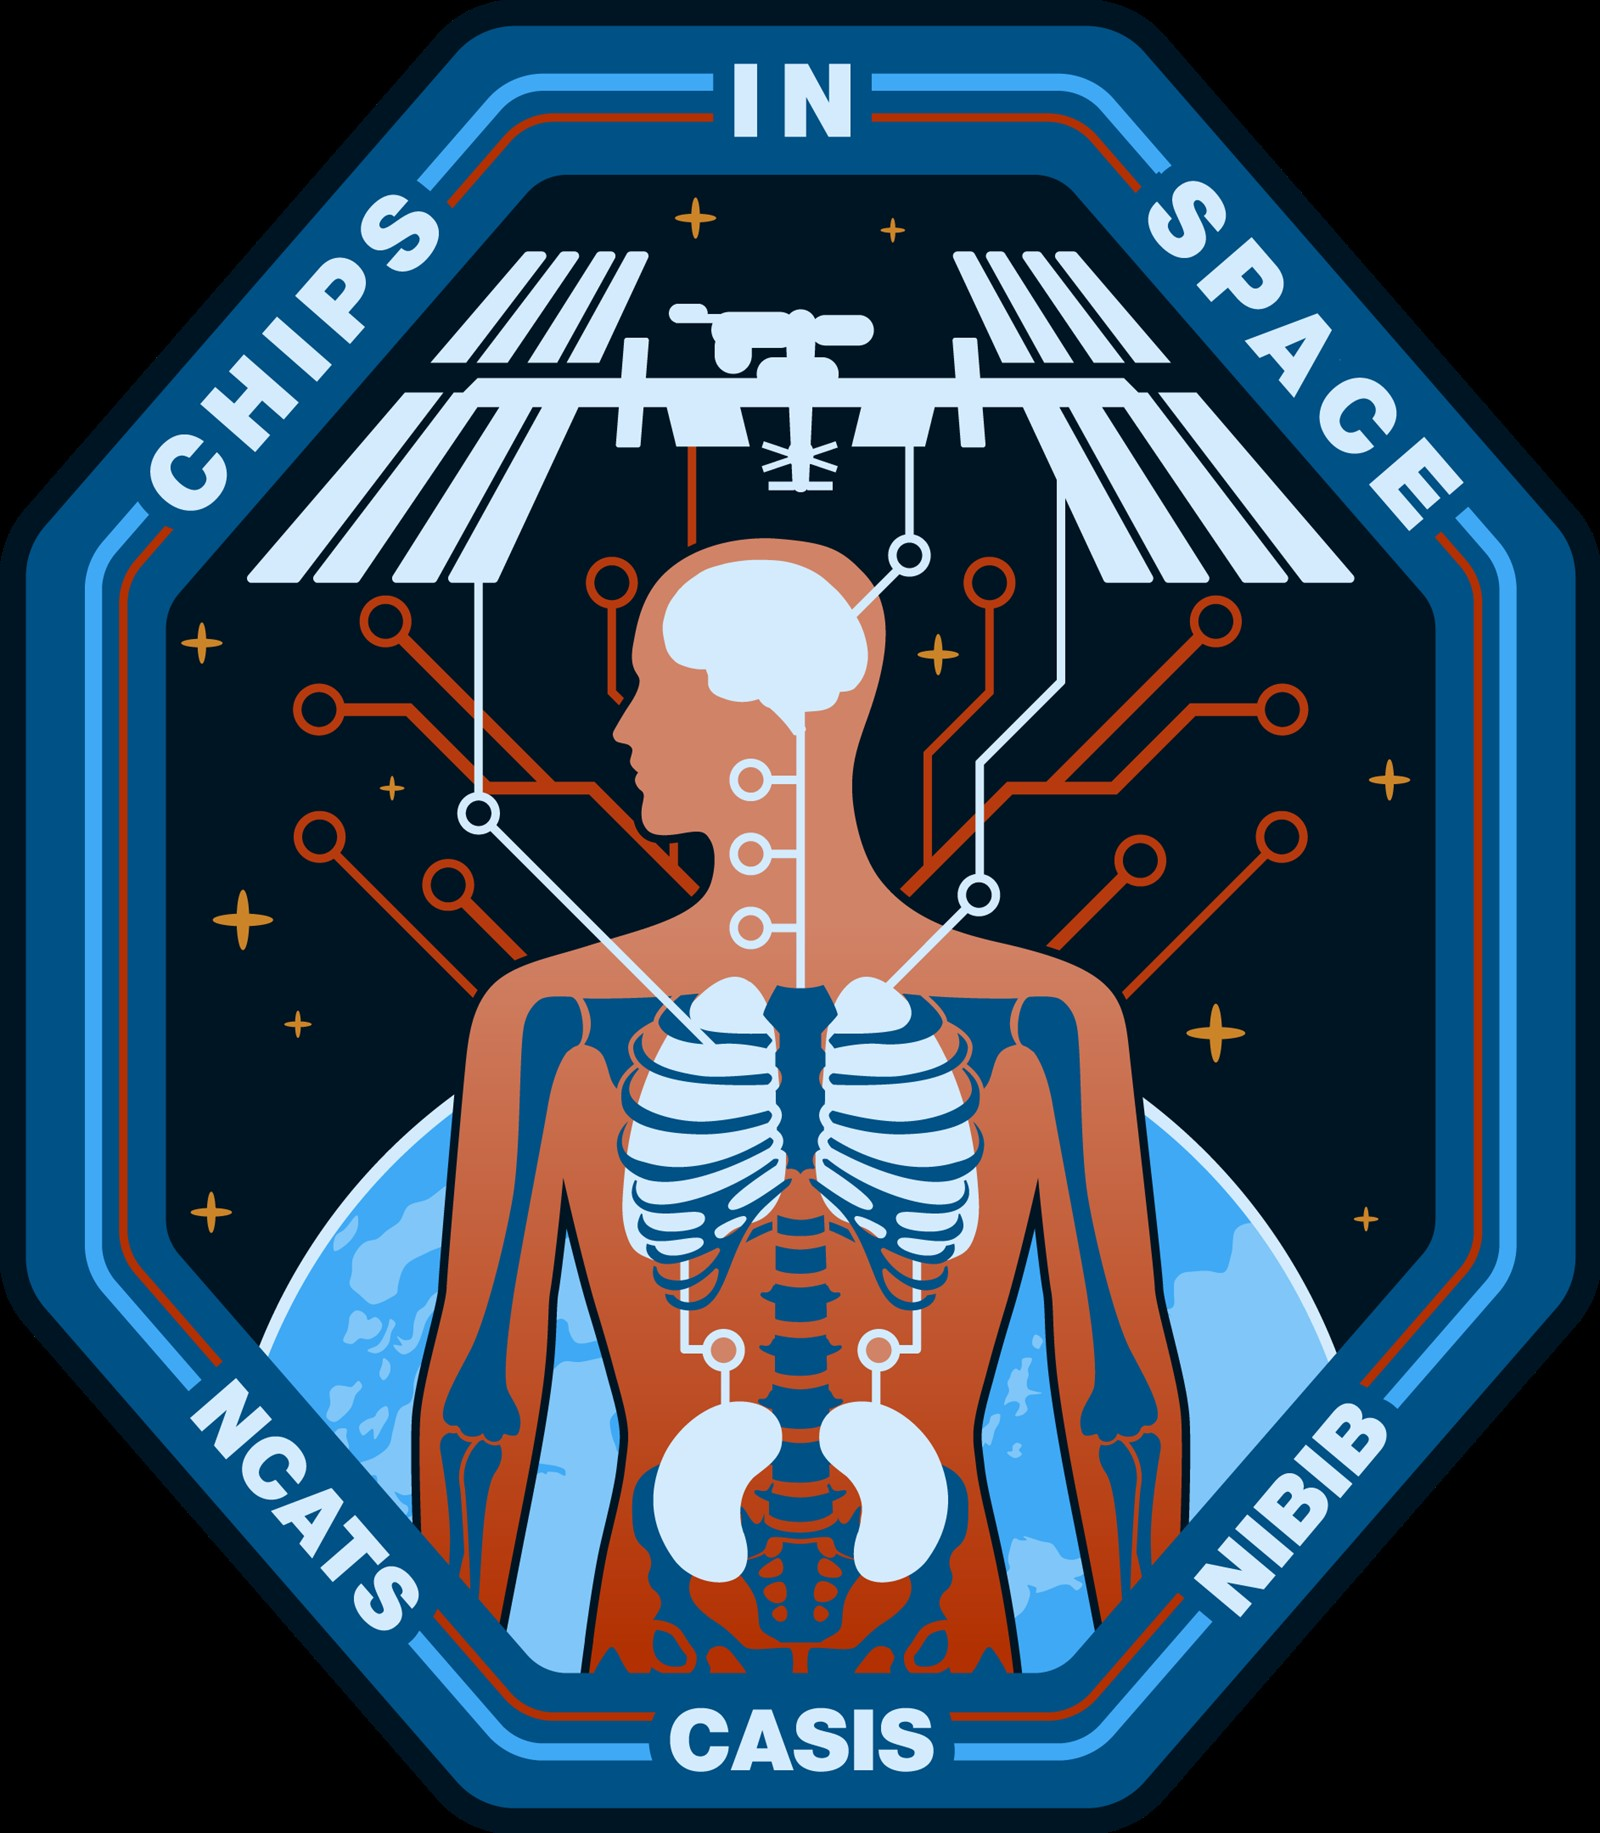 CASIS17 075 Chips in Space Mission Patch Final 1600